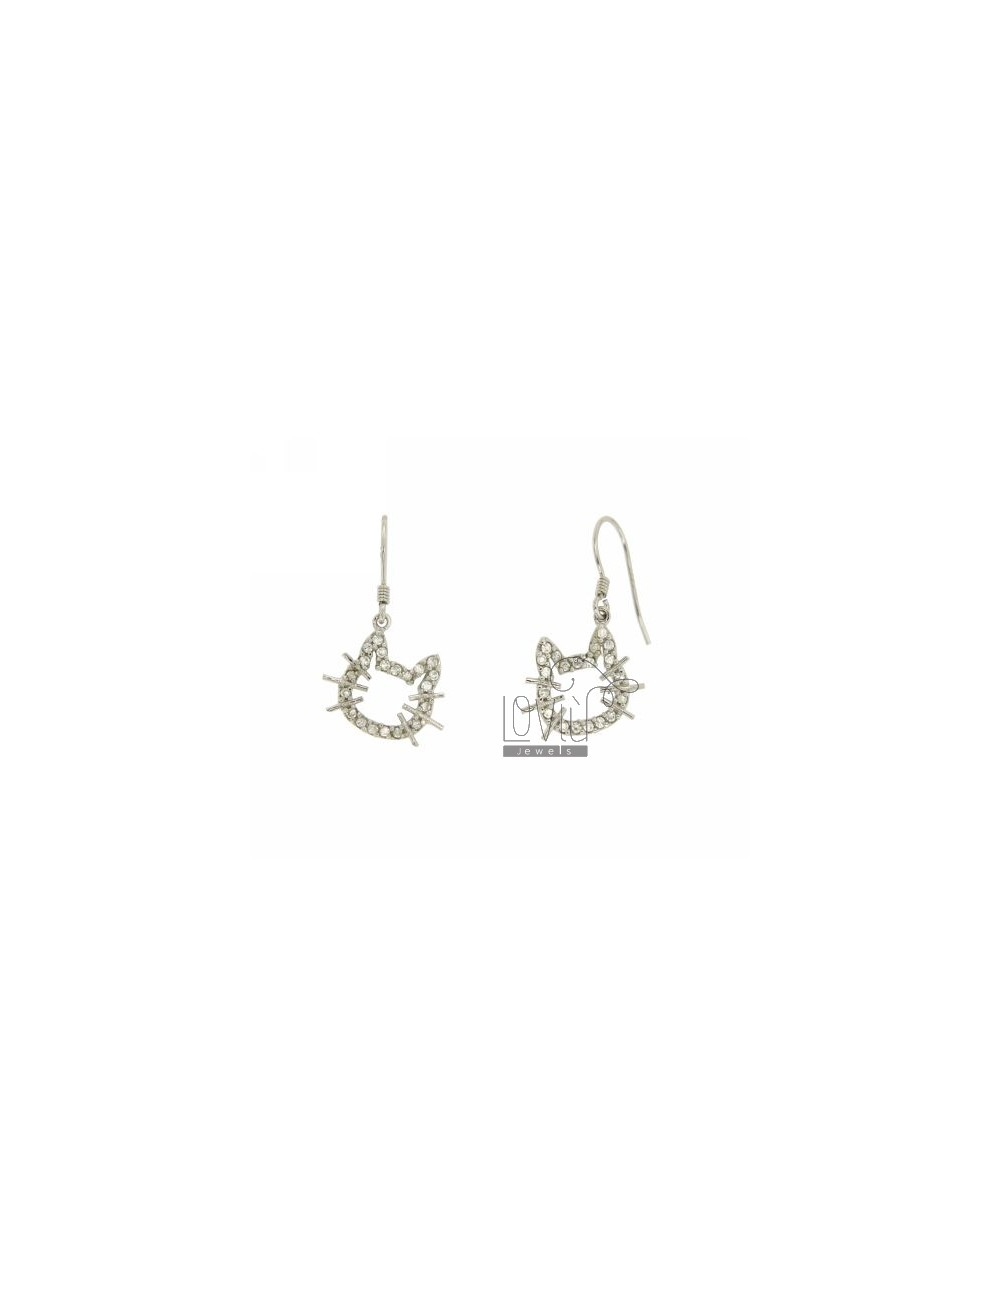 PENDING WITH ZIRCONIA EARRINGS FACE KITTEN IN AG TIT 925 ‰